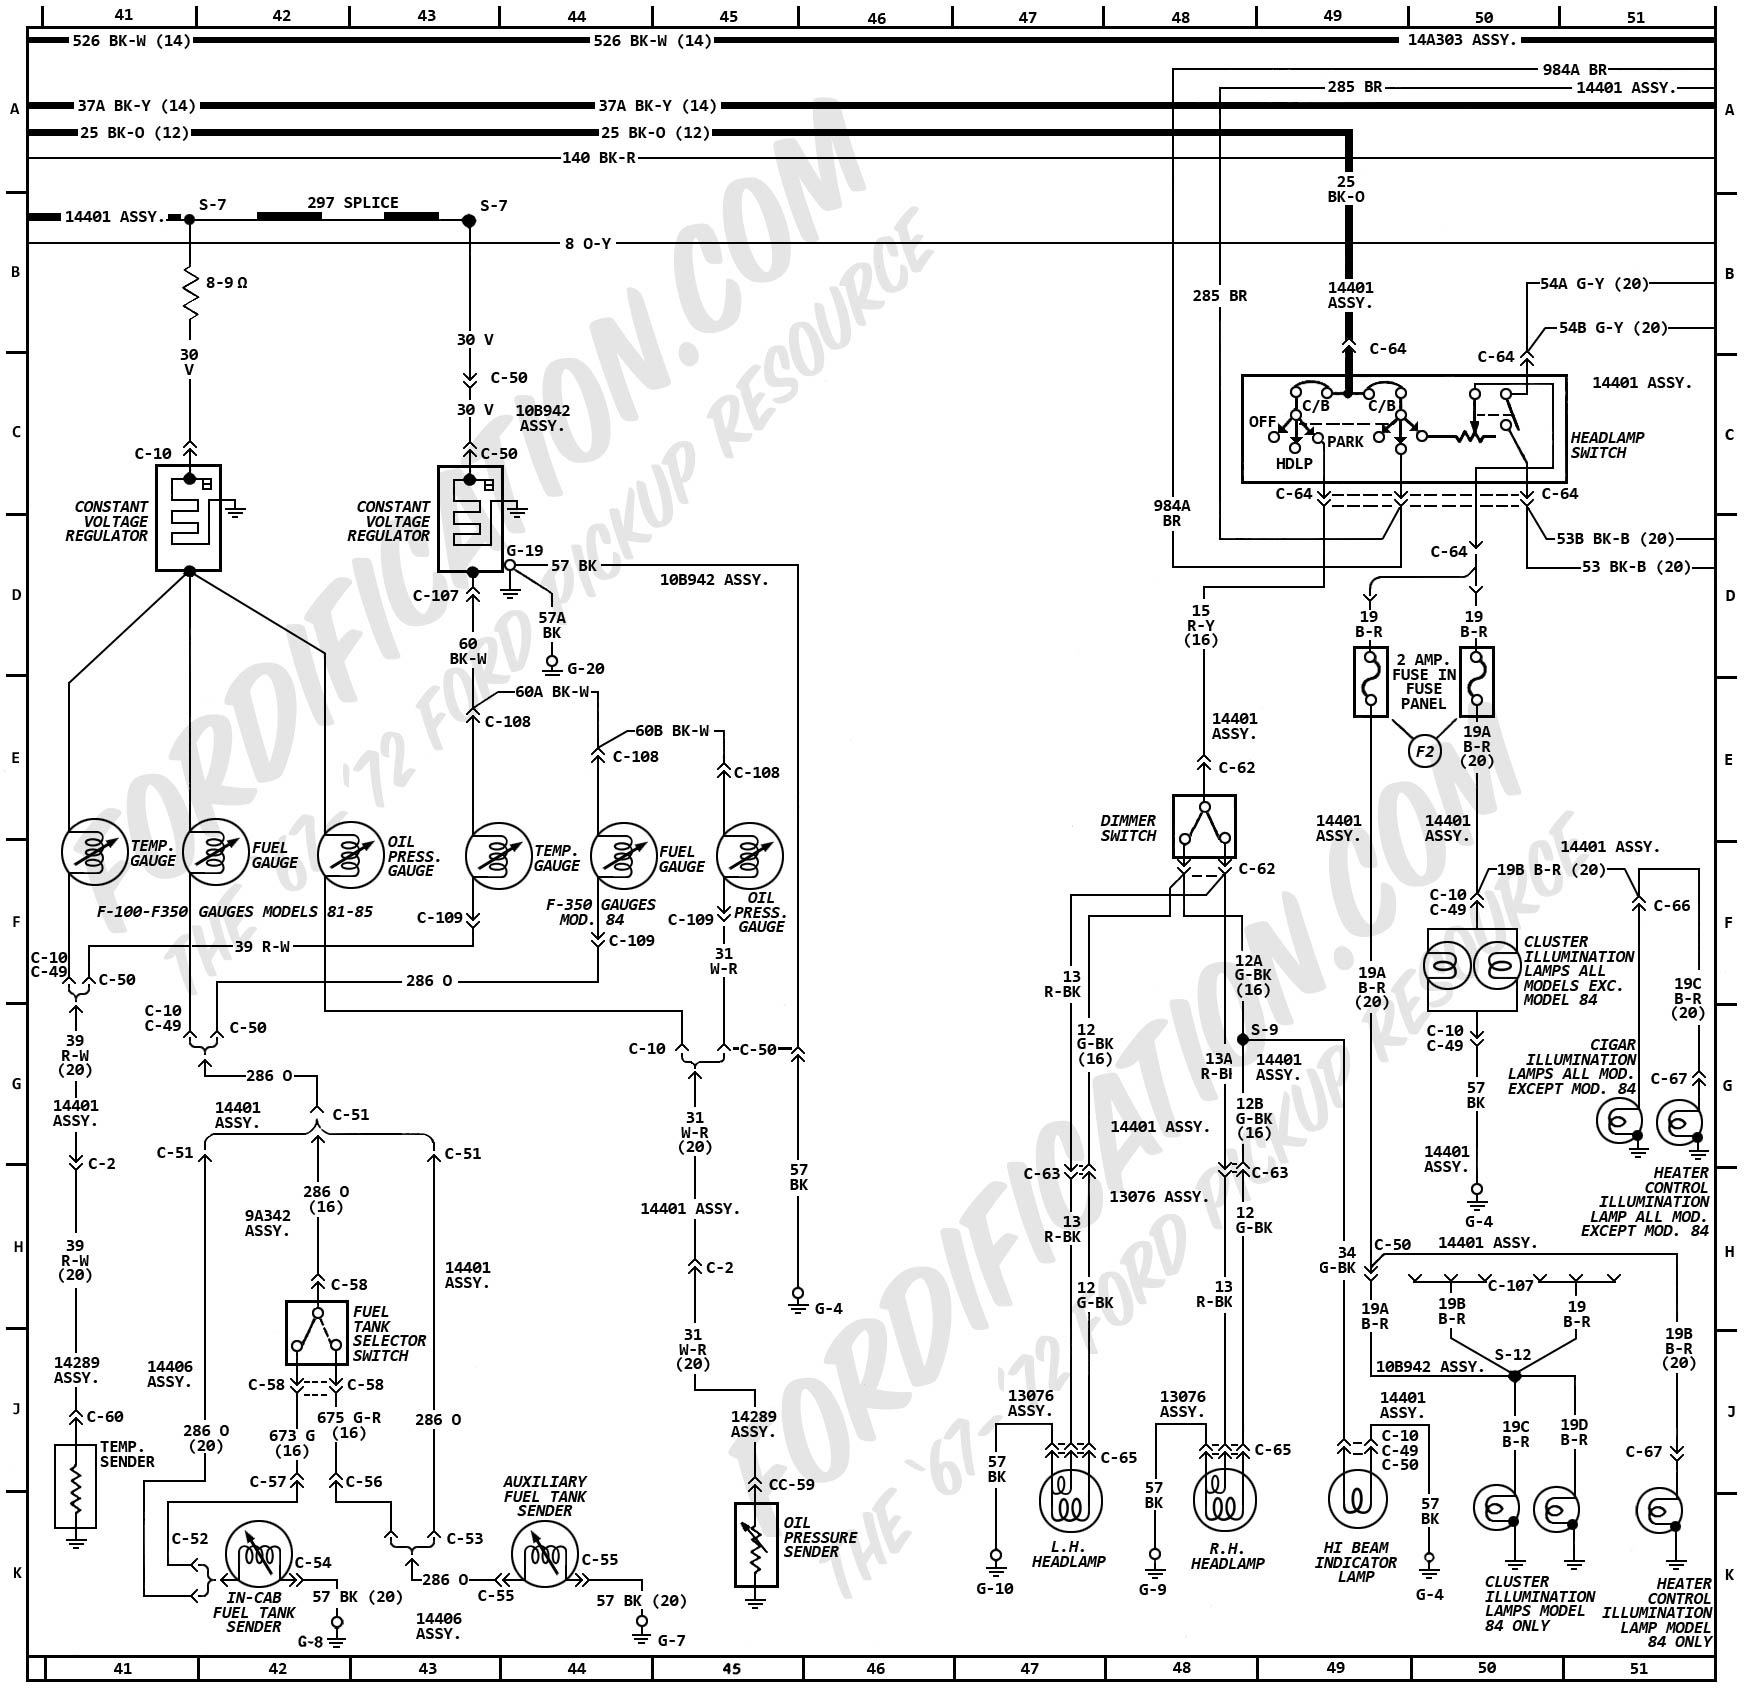 Ford Wiring Schematic Diagrams Diagram 1959 F100 1941 Truck 9n 1972 Fordification Com Schematics Free Electrical